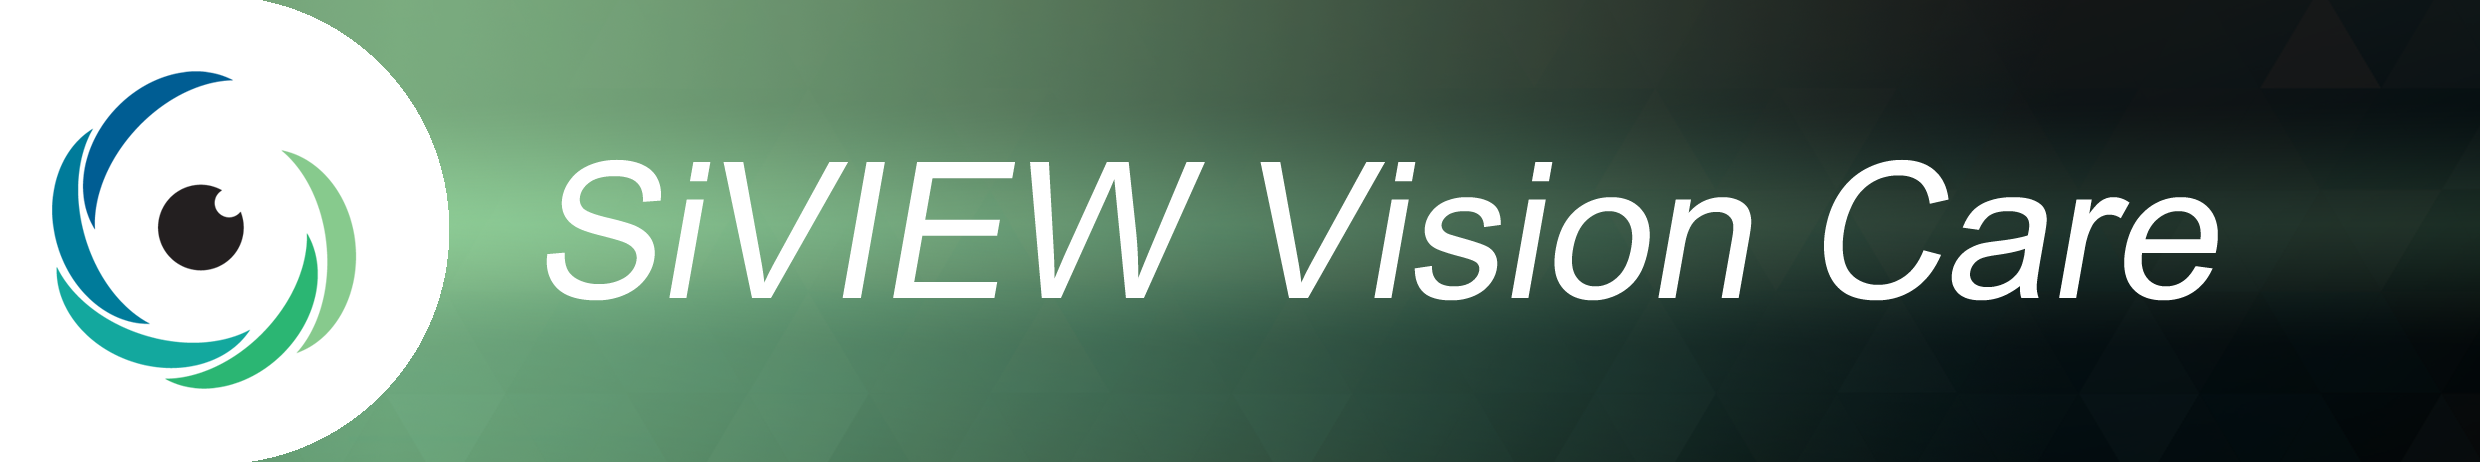 SiVIEW Vision Care